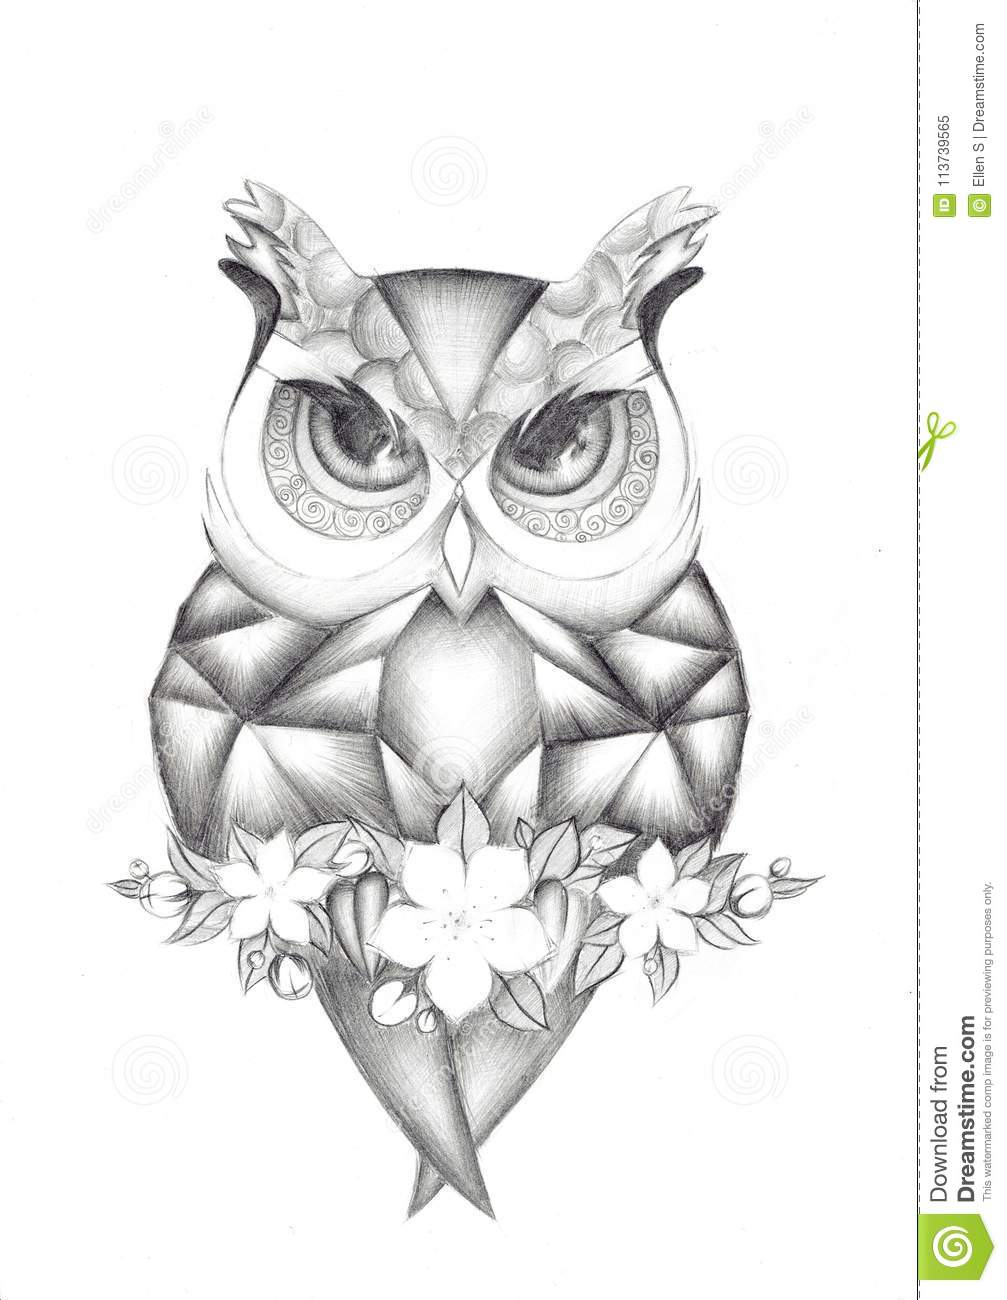 illustration of a bird owl drawing pencil stock illustration Owl Pencil Drawings of White illustration of a bird owl drawing pencil